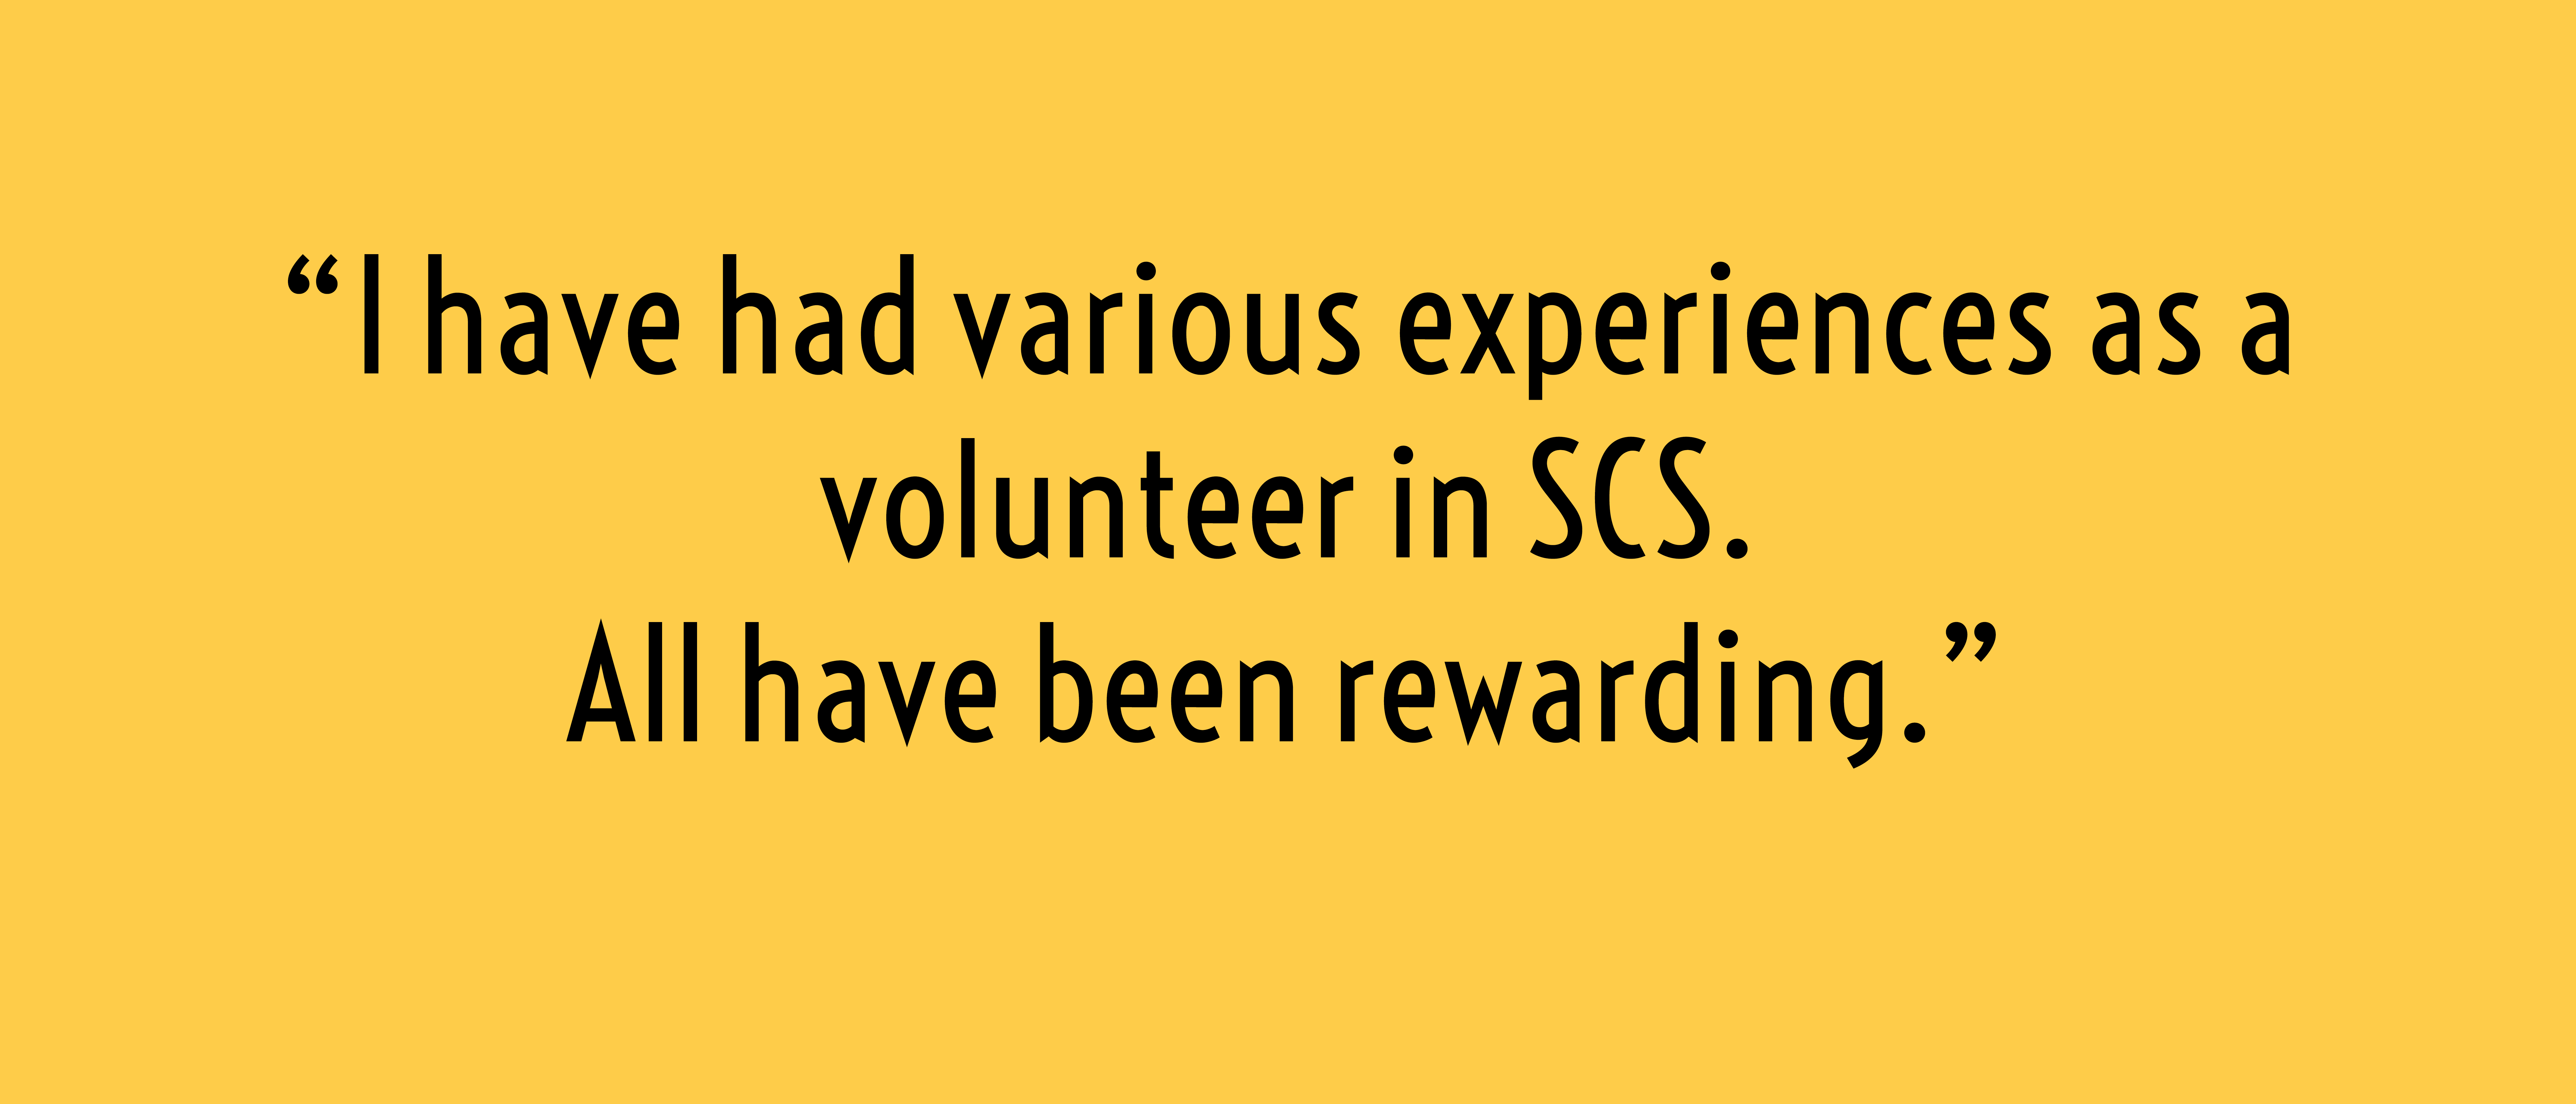 I have had various experiences as a volunteer in SCS. All have been rewarding.